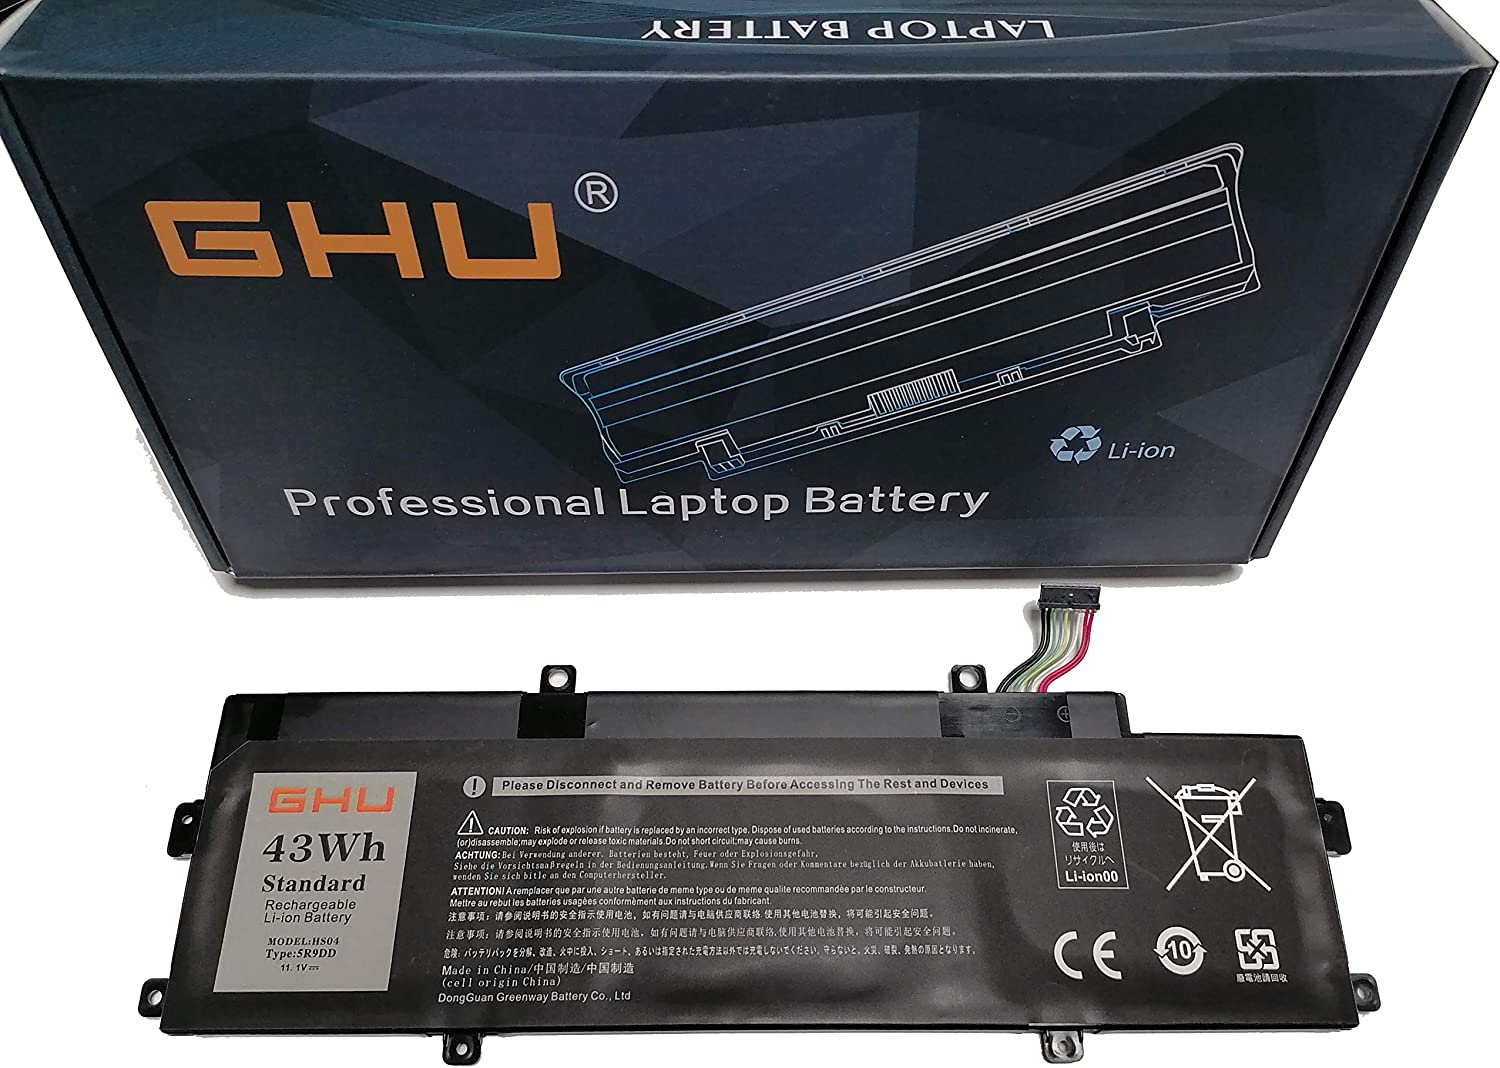 New GHU 43Wh 5R9DD Battery Compatible with Dell Latitude Chromebook 11 (3120) P22T Series Fits P/N KTCCN 0KTCCN XKPD0 P22T001